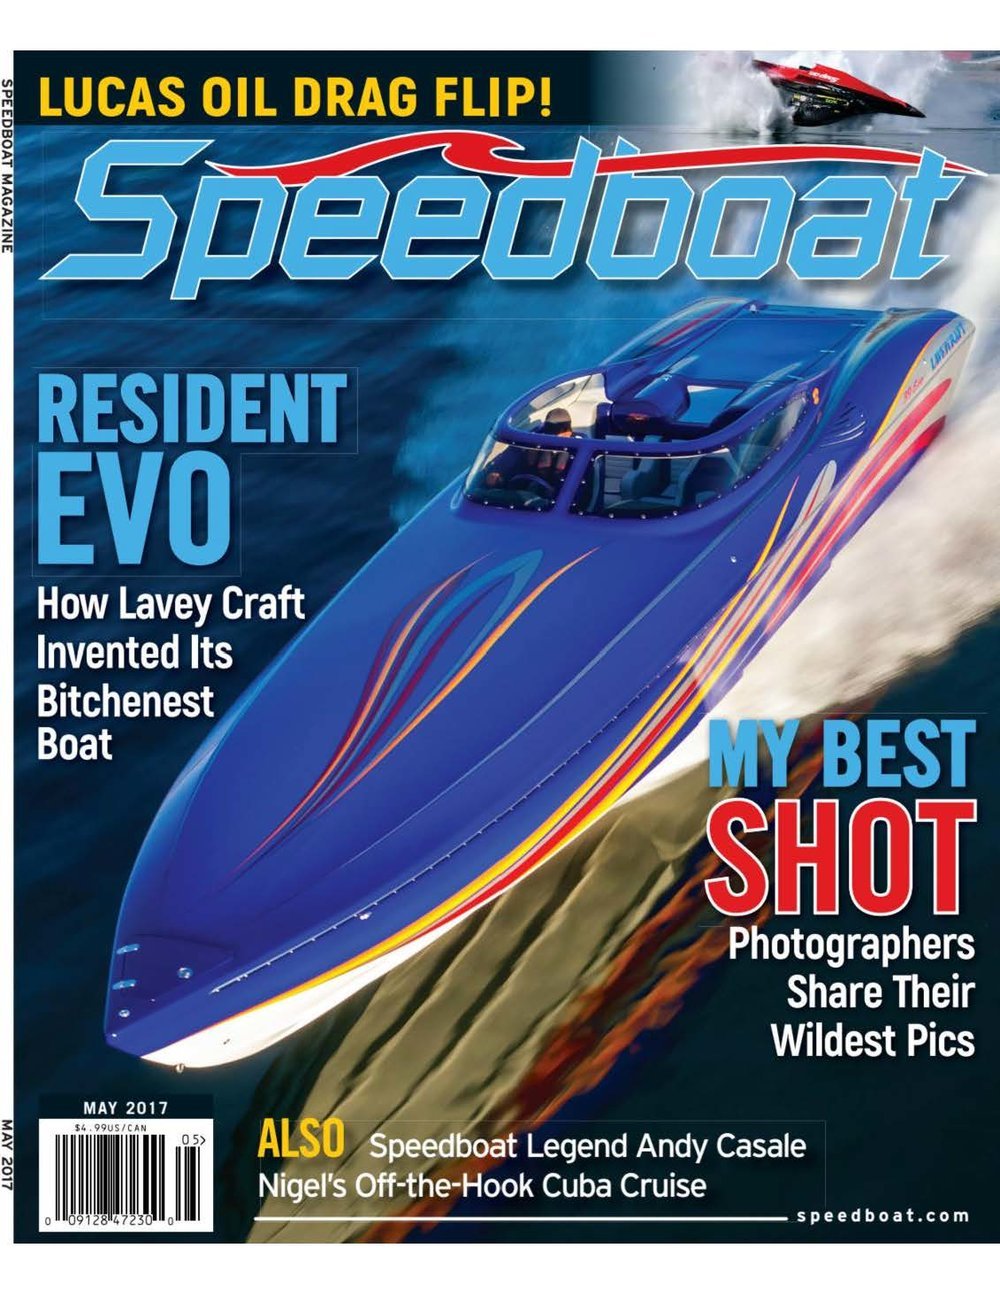 Click to read the full article from Speedboat Magazine, May 2017 issue.